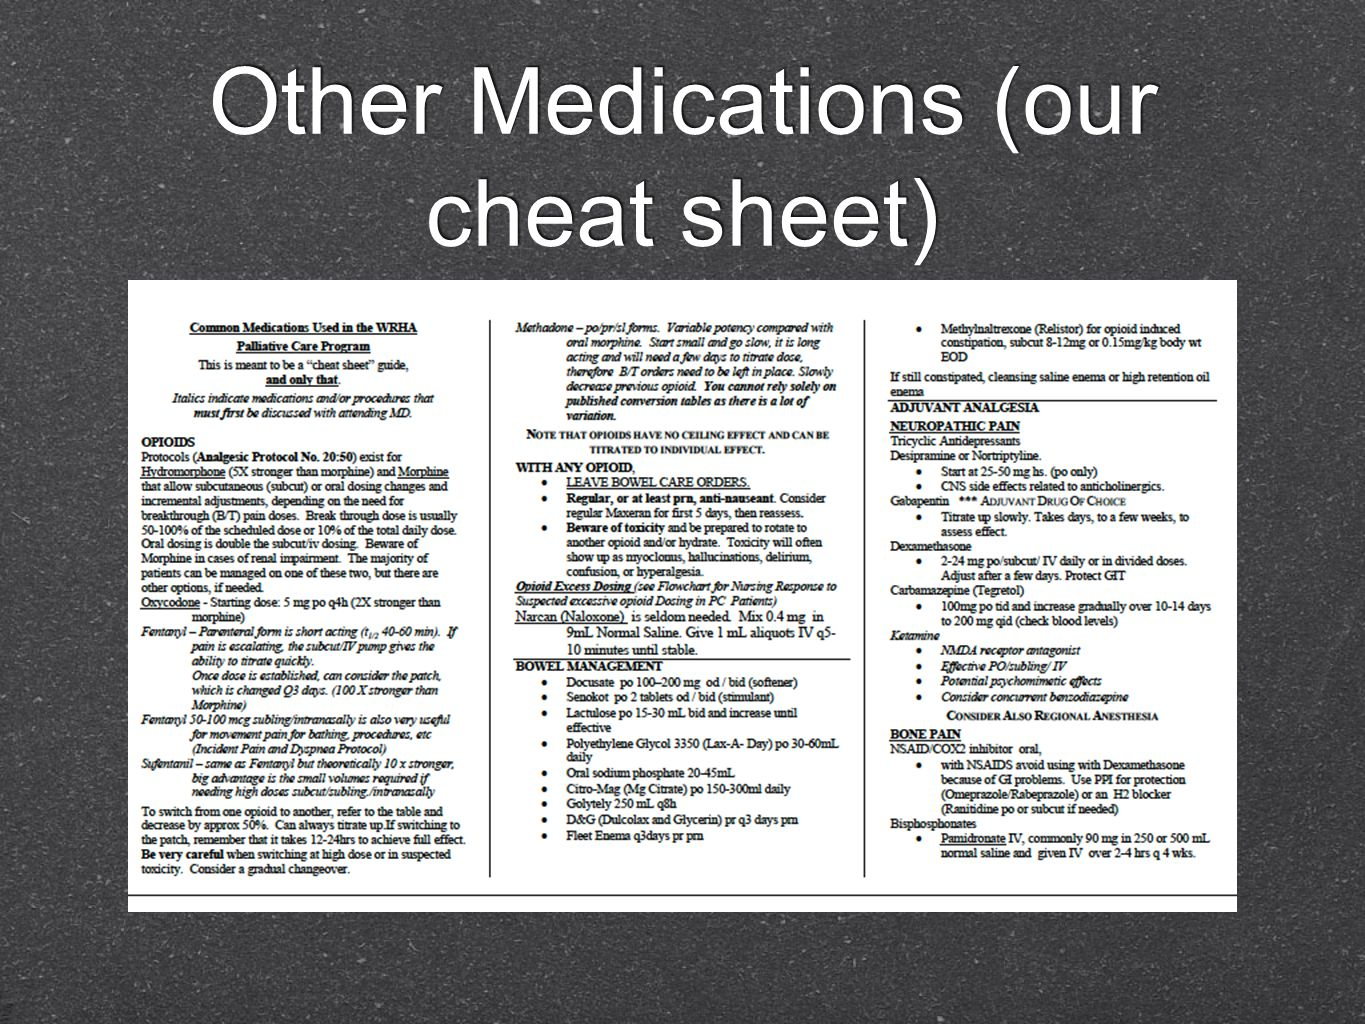 Other Medications (our cheat sheet)